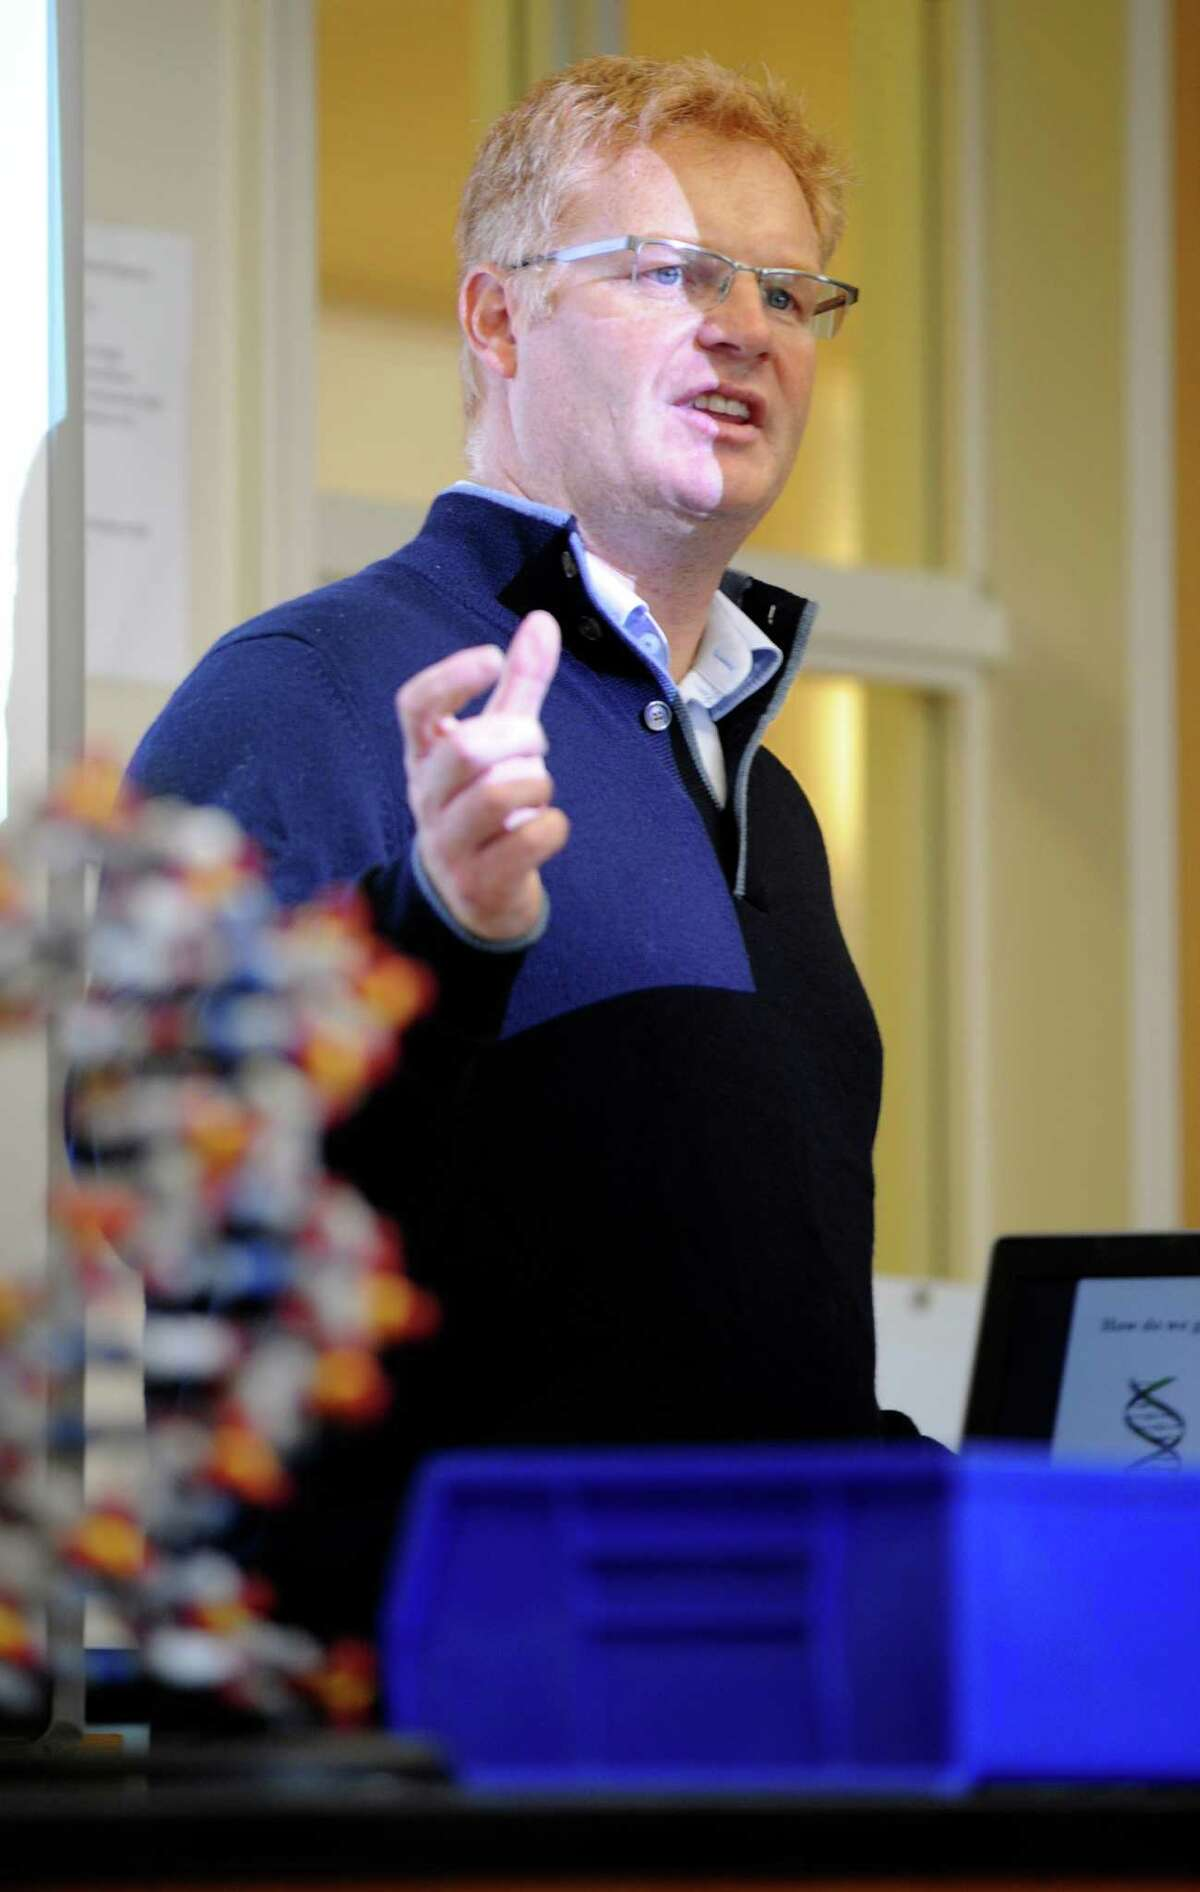 Dr. Bruce Nash, of the Cold Spring Harbor Laboratory, speaks with Upper School classes to discuss gene therapy at Convent of the Sacred Heart on Monday, October 15, 2012. Convent of the Sacred Heart is the third school, and the first Connecticut-based school, to become a charter member of the Cold Spring Harbor genetics lab.